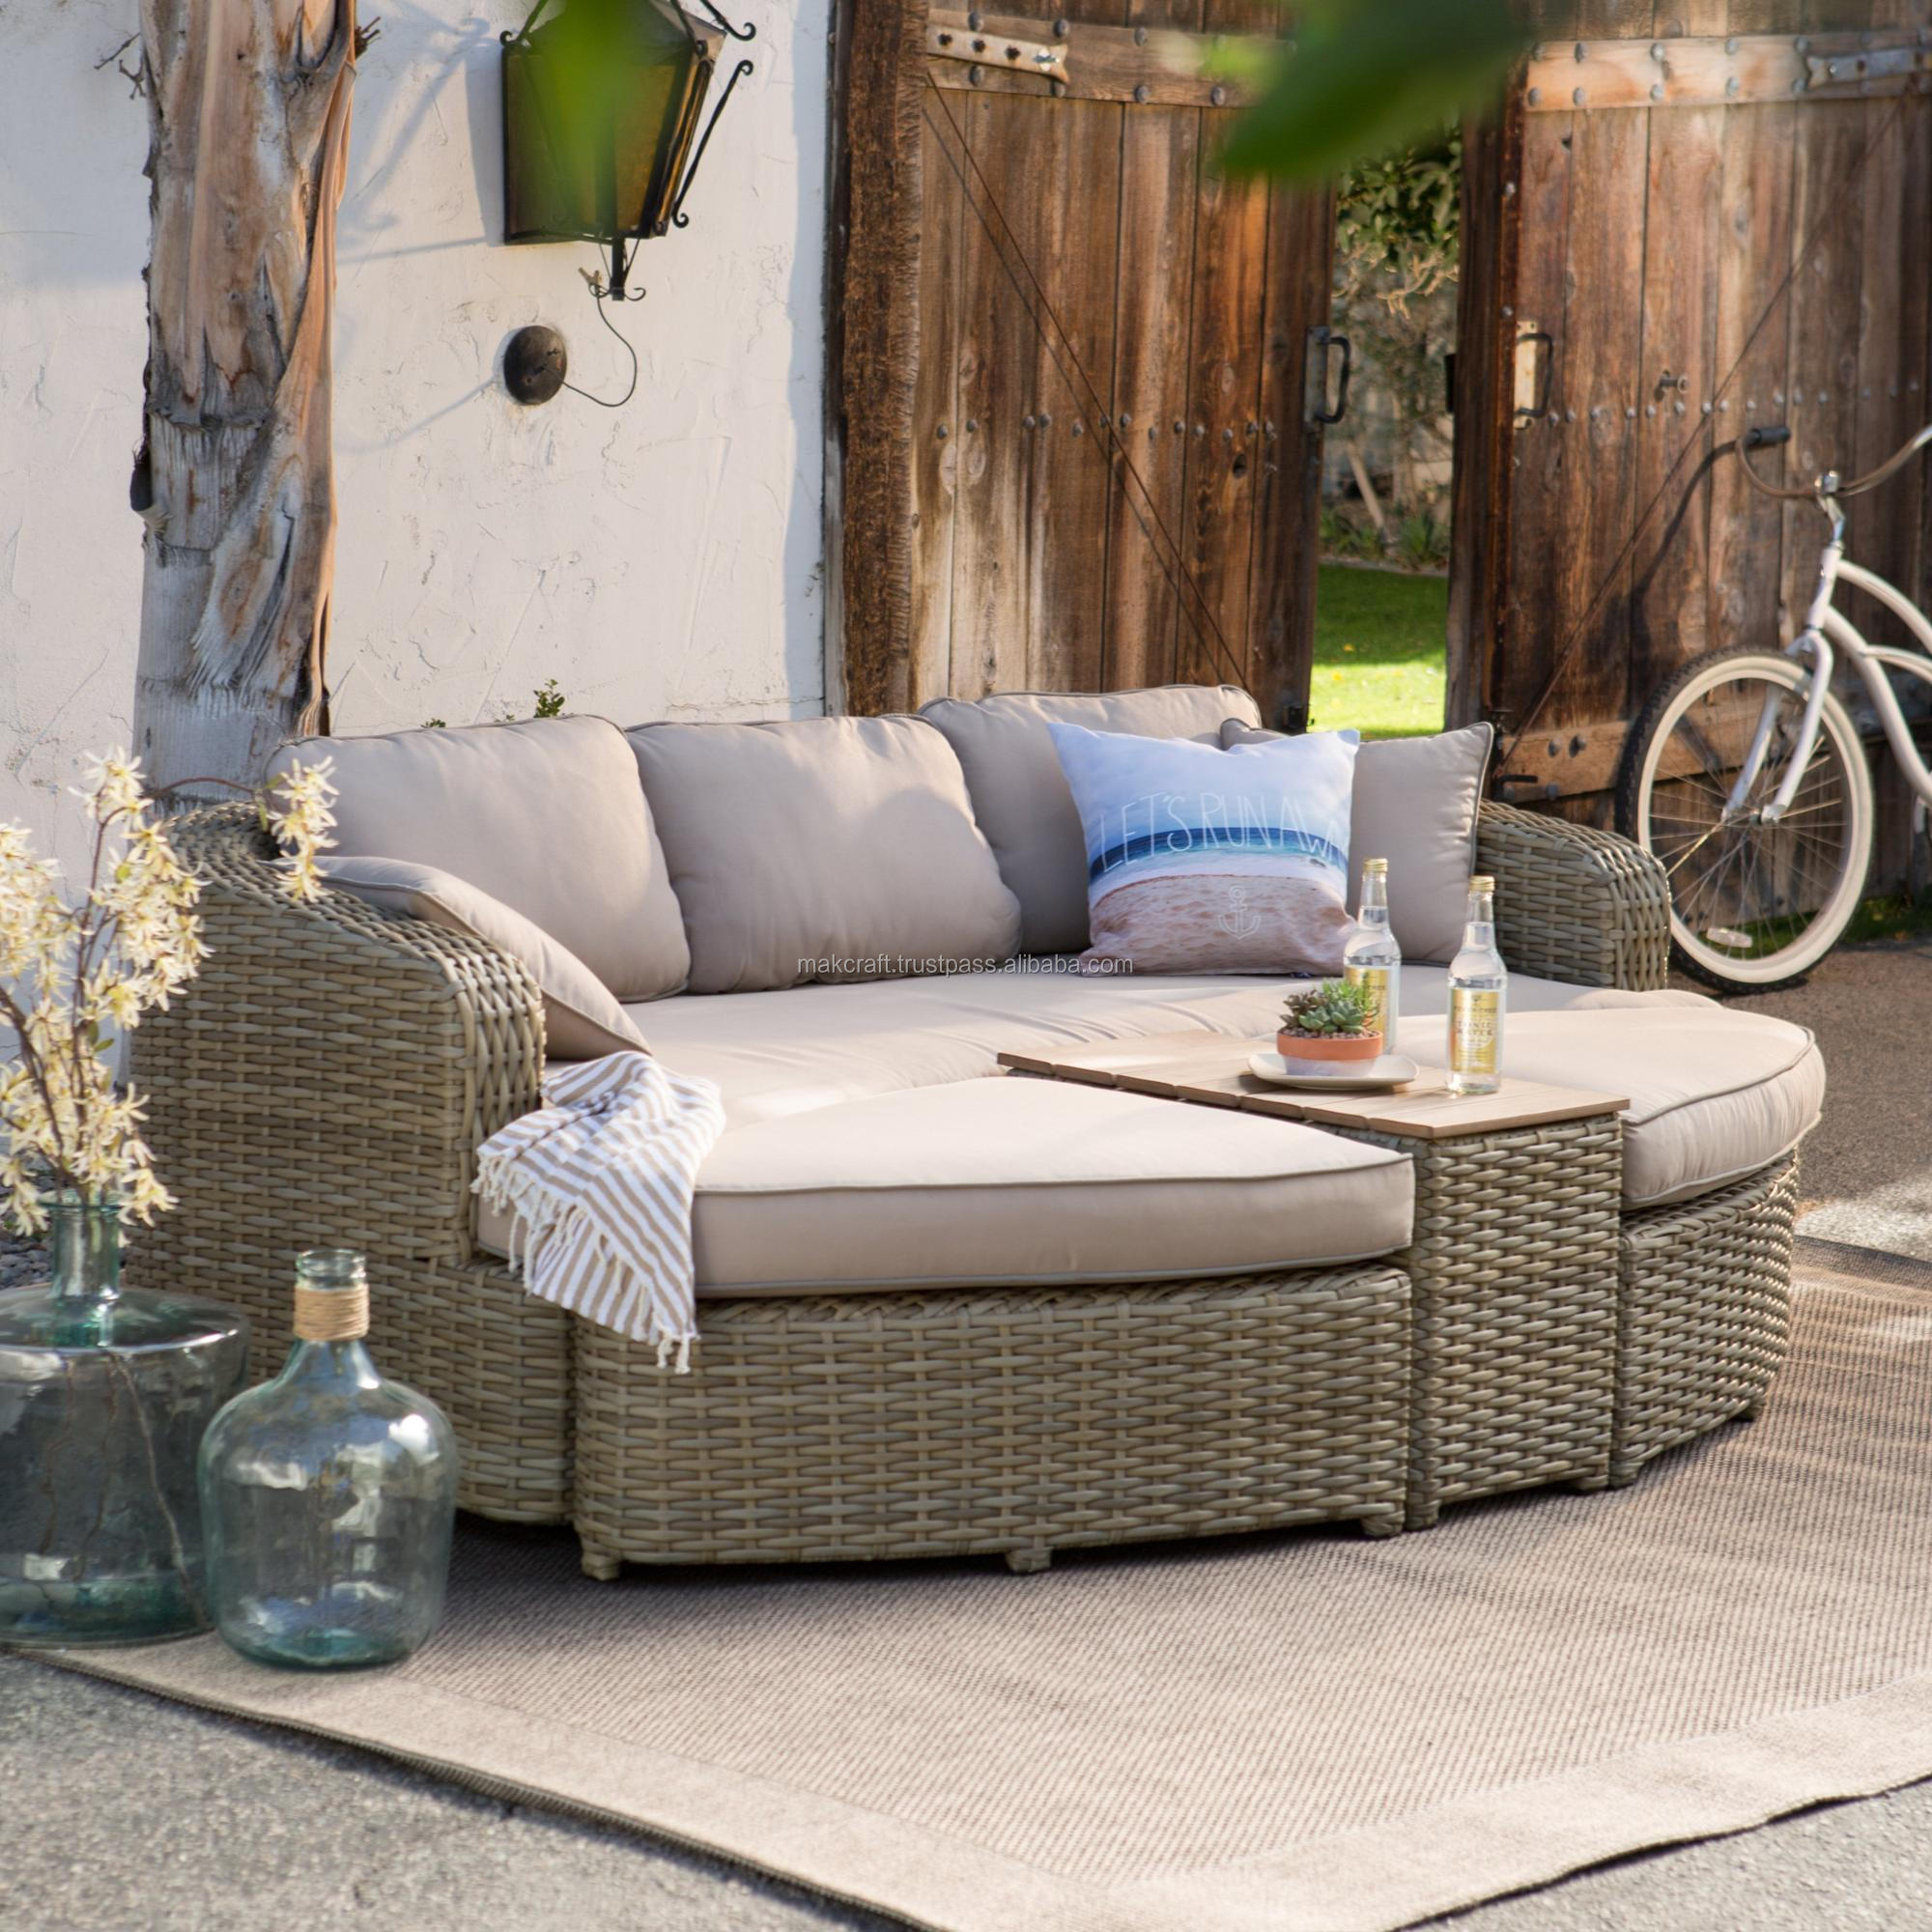 Vietnam Supplier Products Outdoor Wicker Rattan Lounge Daybed Sofa